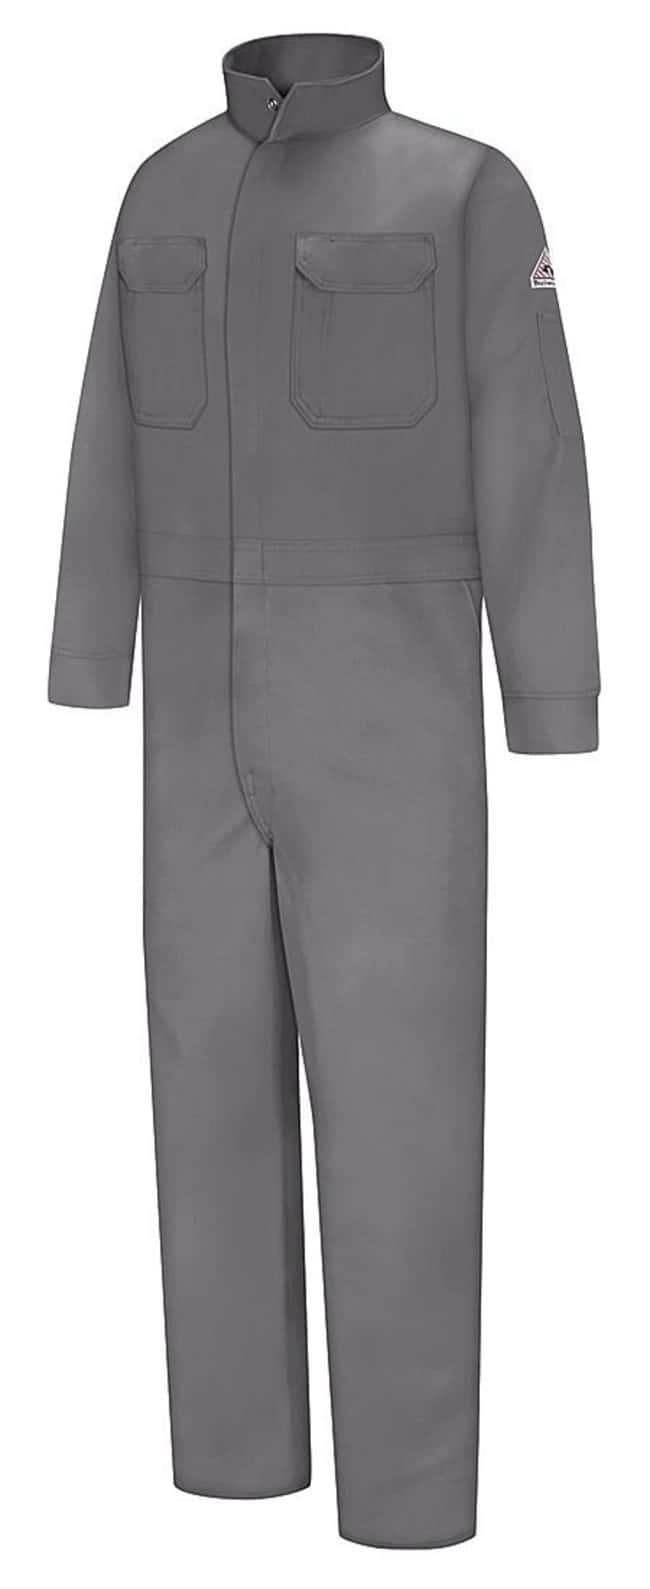 VF WorkwearBulwark EXCEL™ FR 8-Pocket Deluxe Coveralls